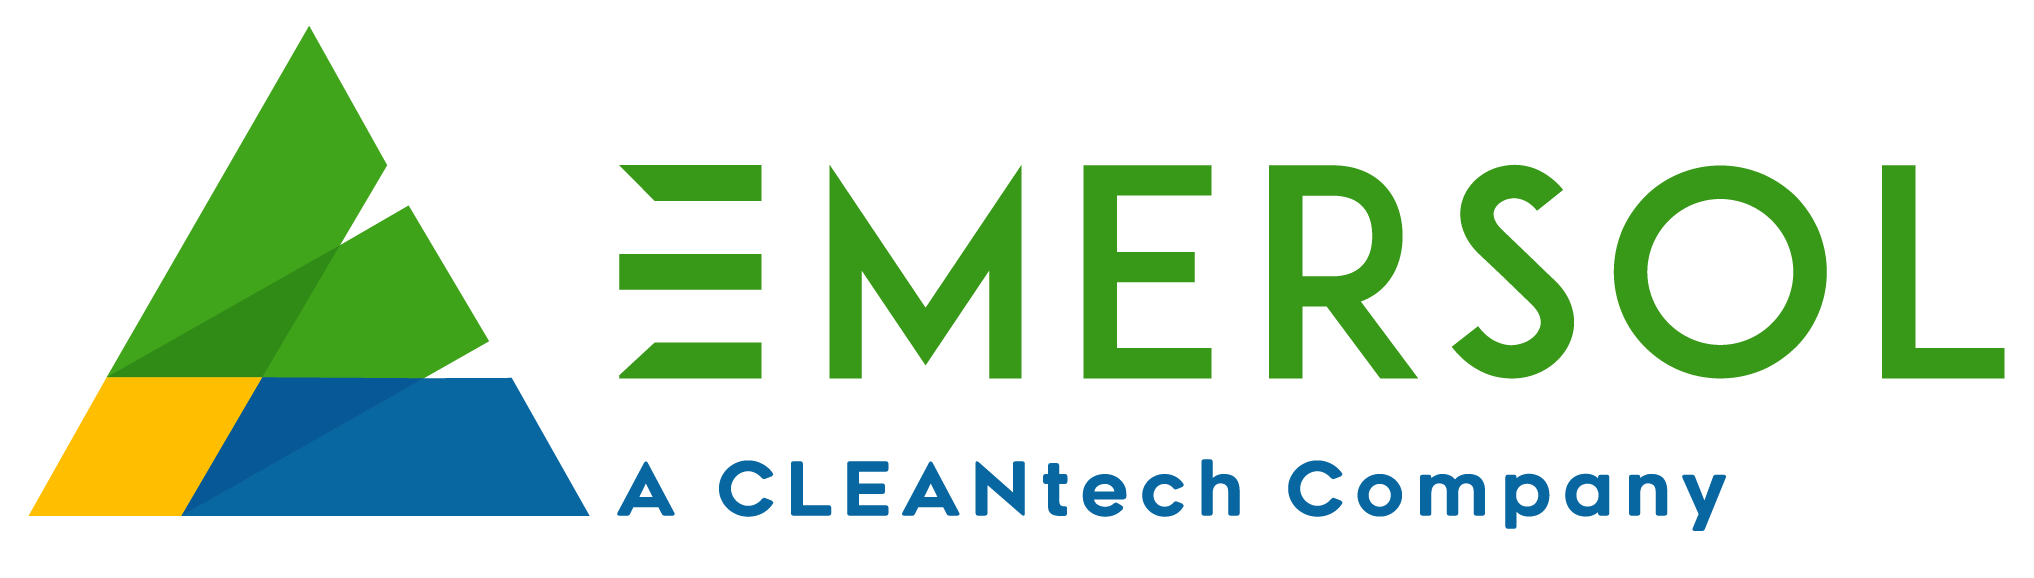 Cleantech Emersol Pvt. Ltd.